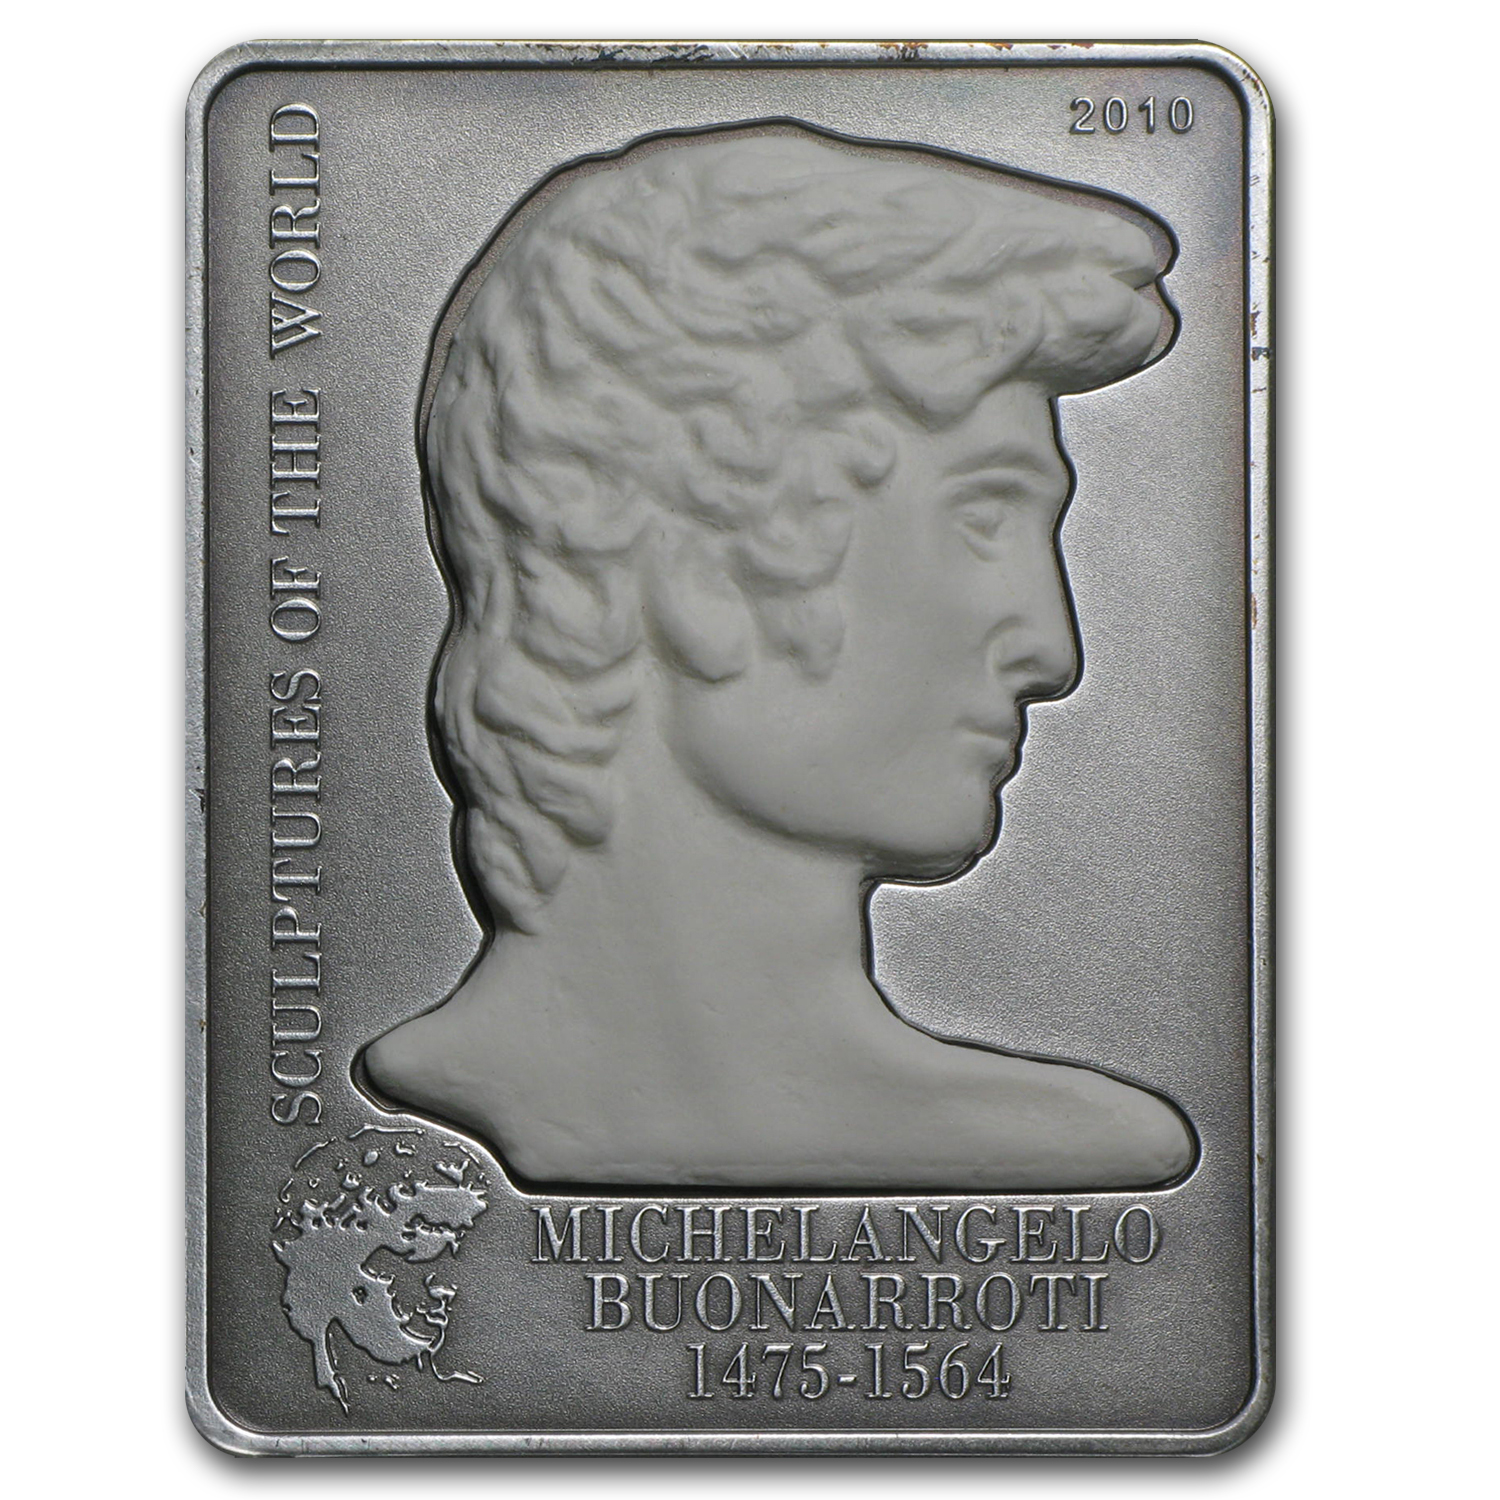 2010 Cook Islands Silver $5 Sculptures Michelangelo's David